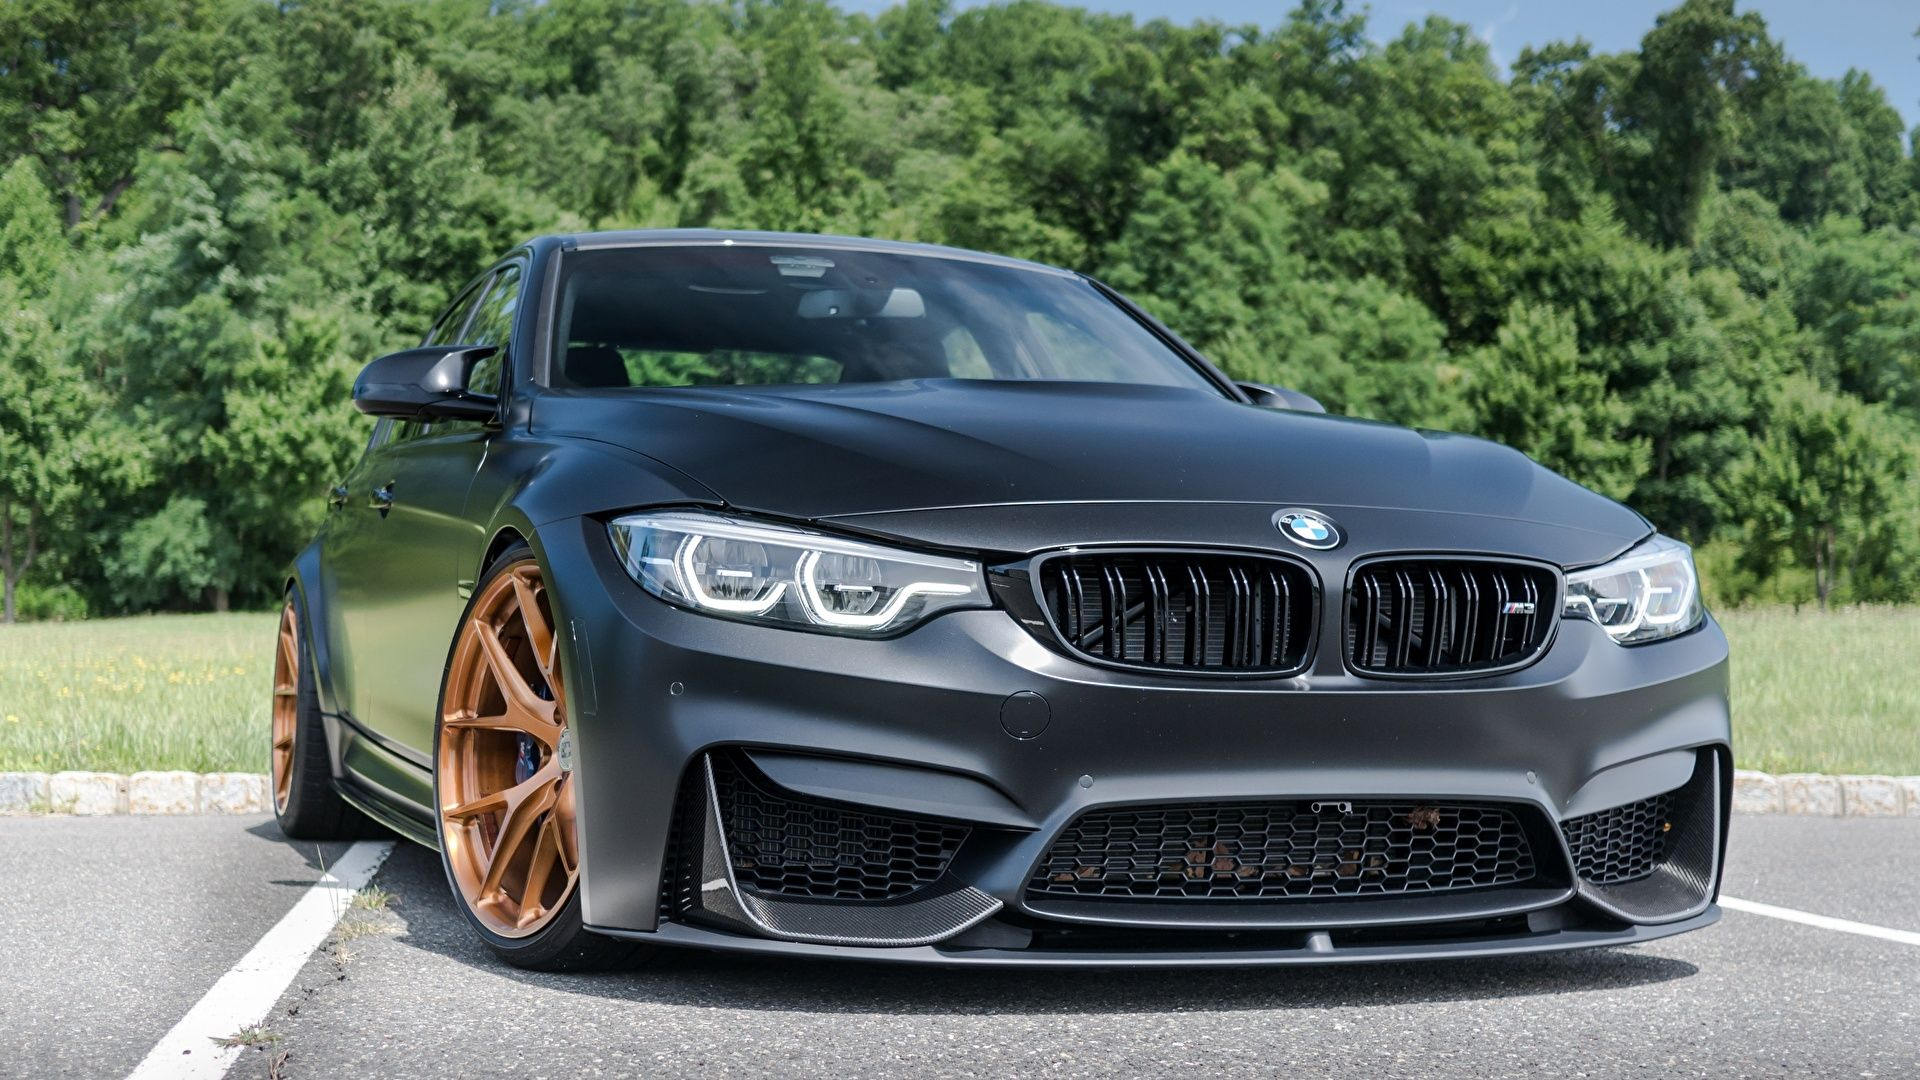 BMW M3 F80 Wallpapers - Top Free BMW M3 F80 Backgrounds ...